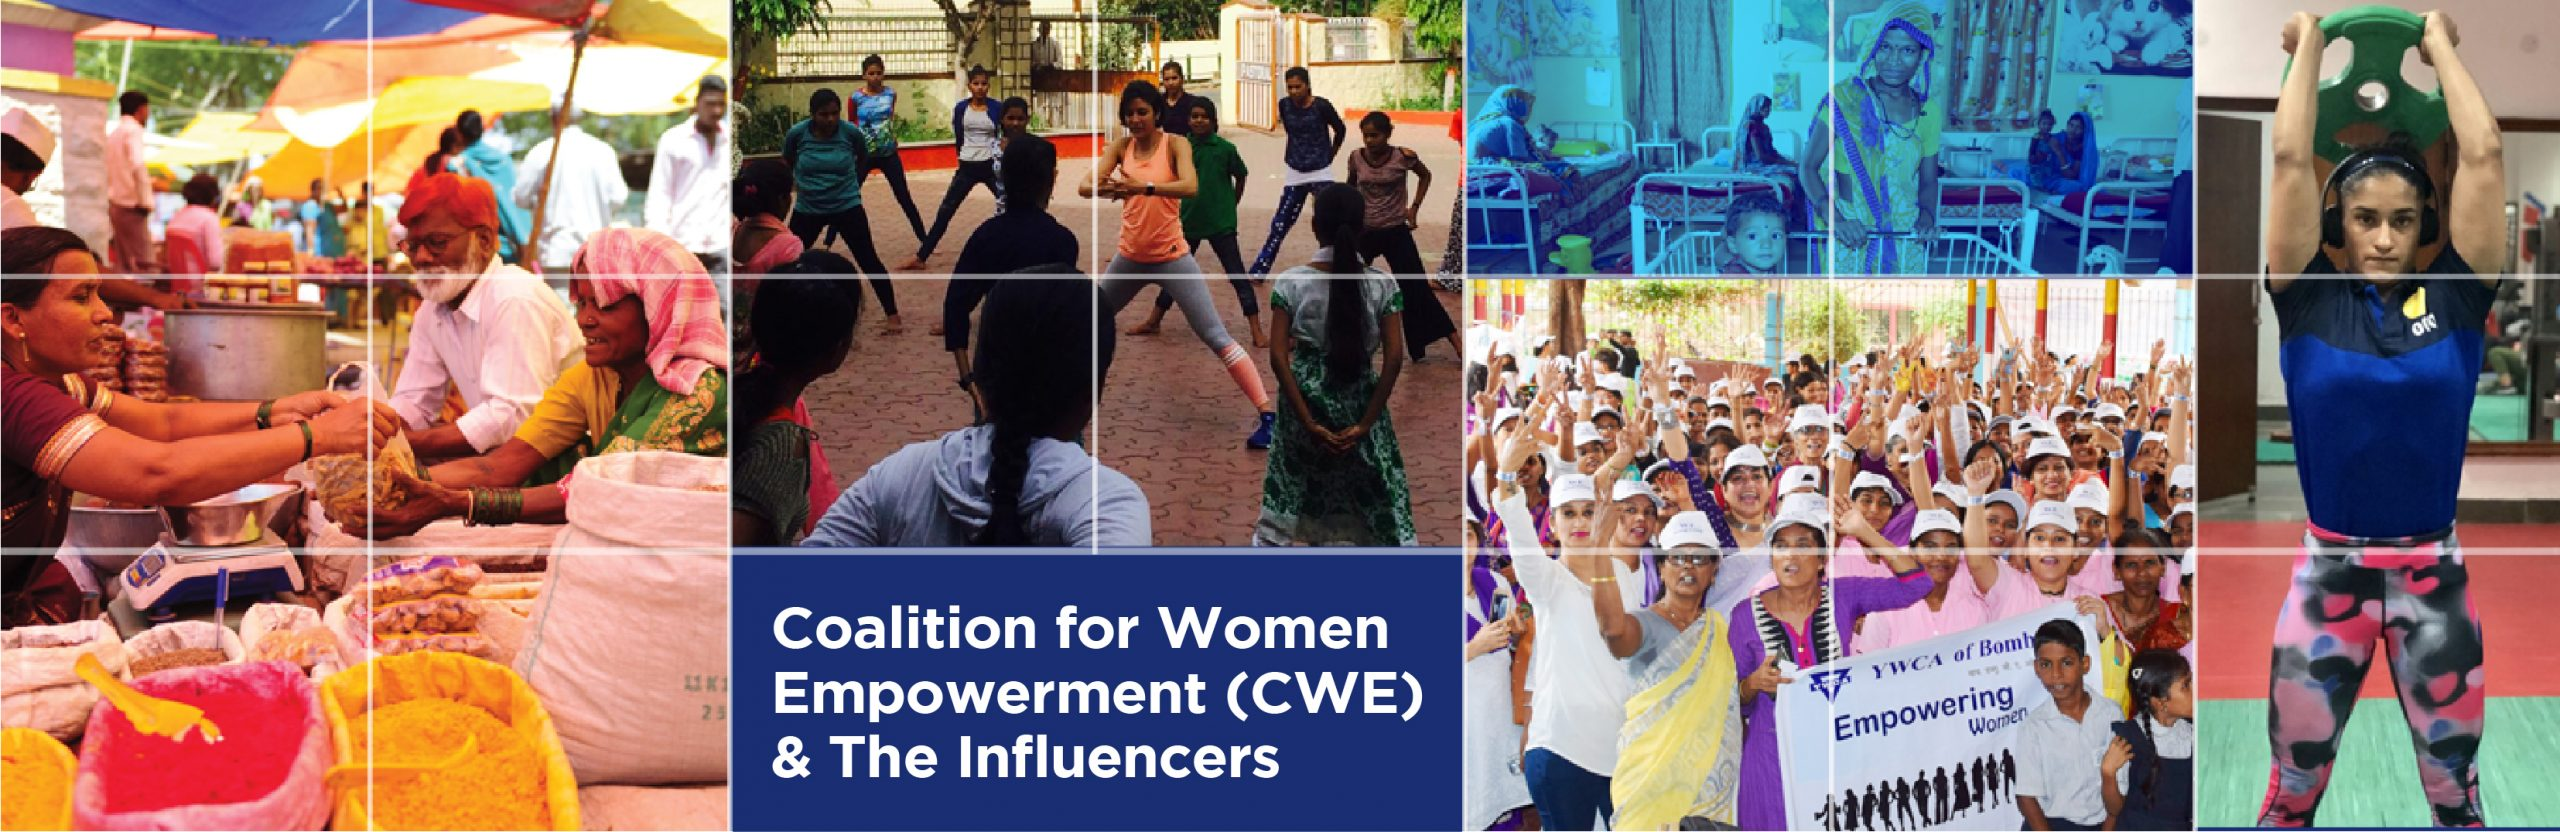 Coalition for Women Empowerment (CWE) & The Influencers Banner_Hi-Res